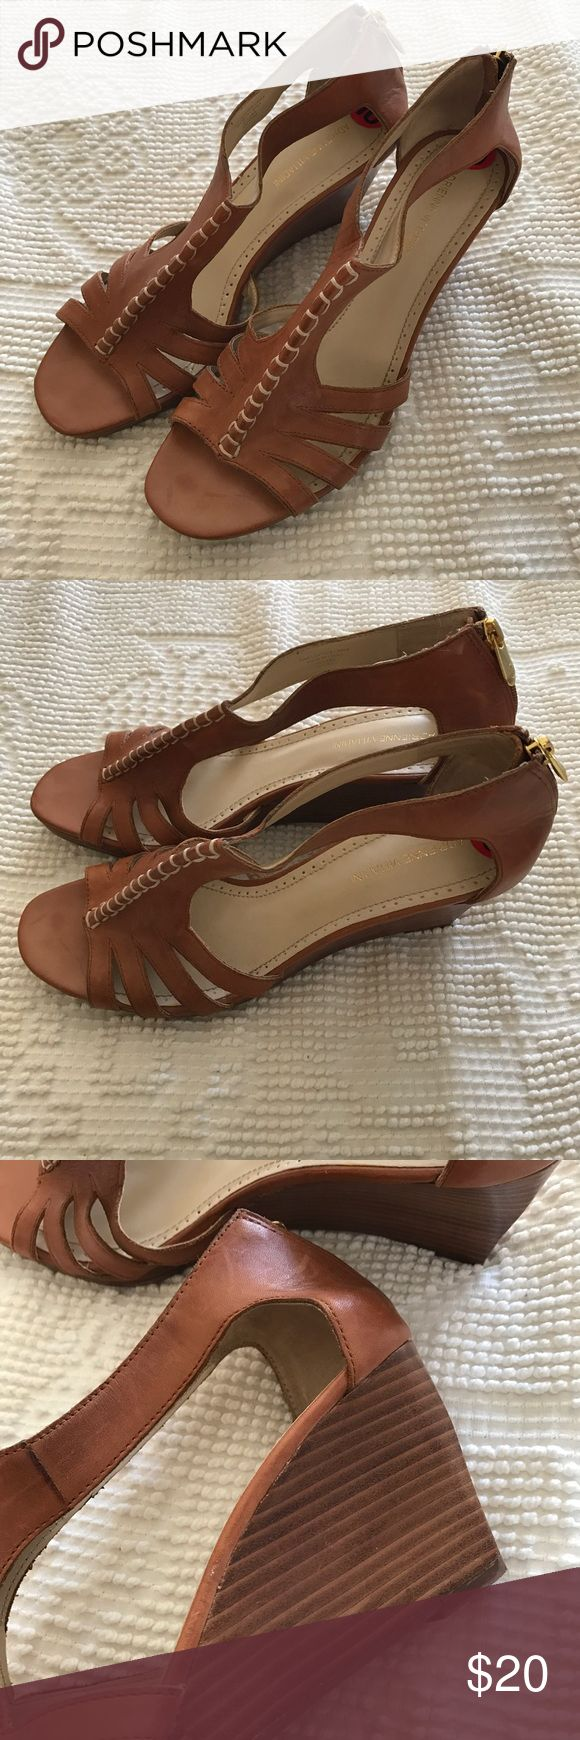 Adrienne Vittadini Brown Wedge Sandals Size 10 🌸 - Brand: Adrienne Vittadini 🌸 - Details: Brown Wedge Sandals With Back Zip 🌸 - Condition: Some Minor Wear On Soles & Marks On Footbed, Nice Condition  🌸 - Fit: True To Size 10 Adrienne Vittadini Shoes Wedges